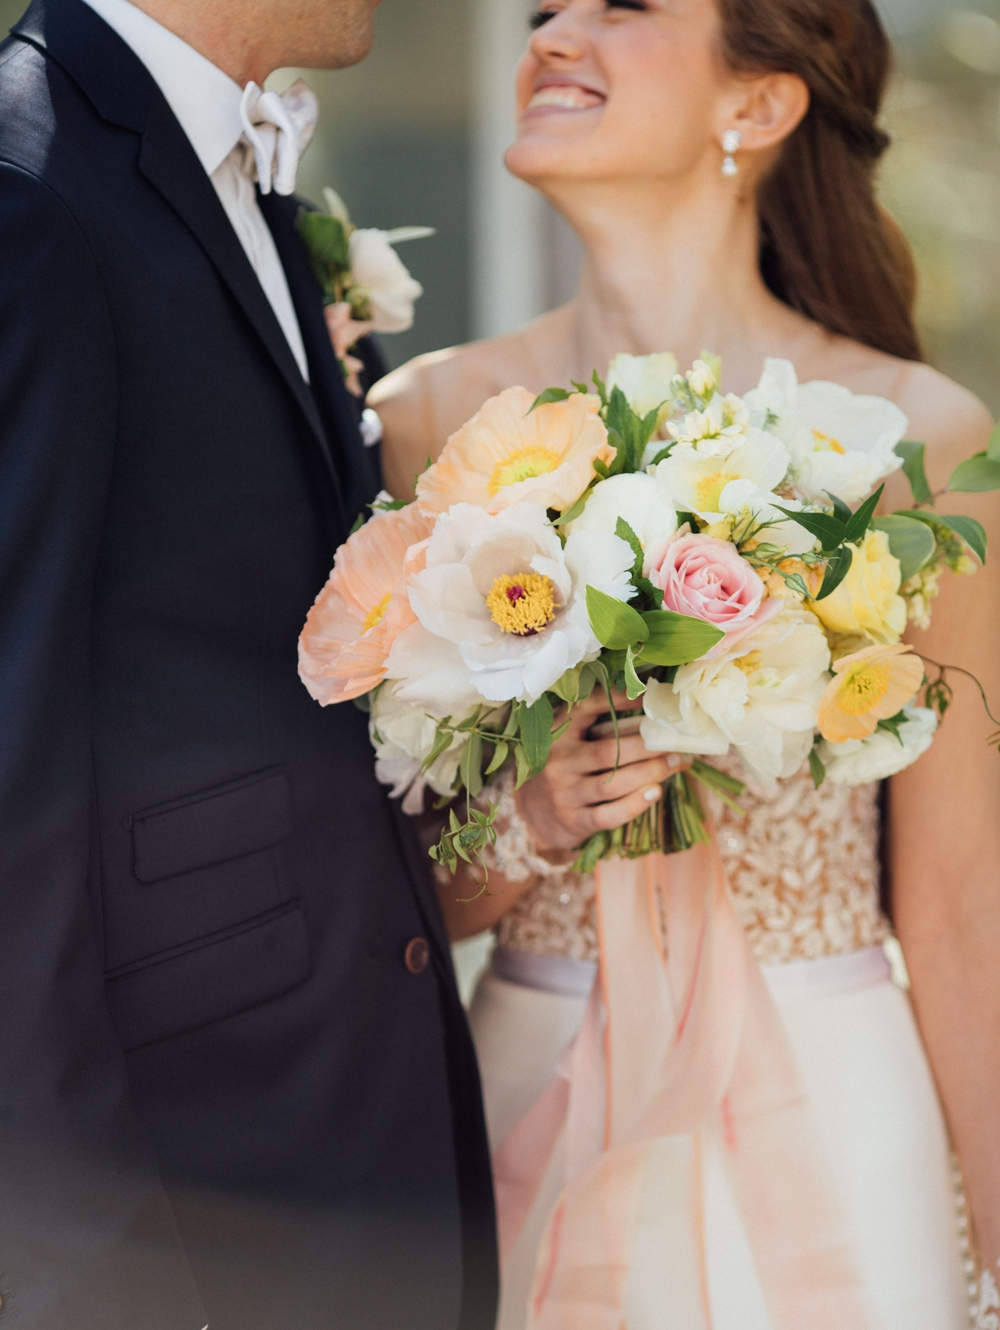 close-up-of-bride-holding-white-pink-and-yellow-bouquet